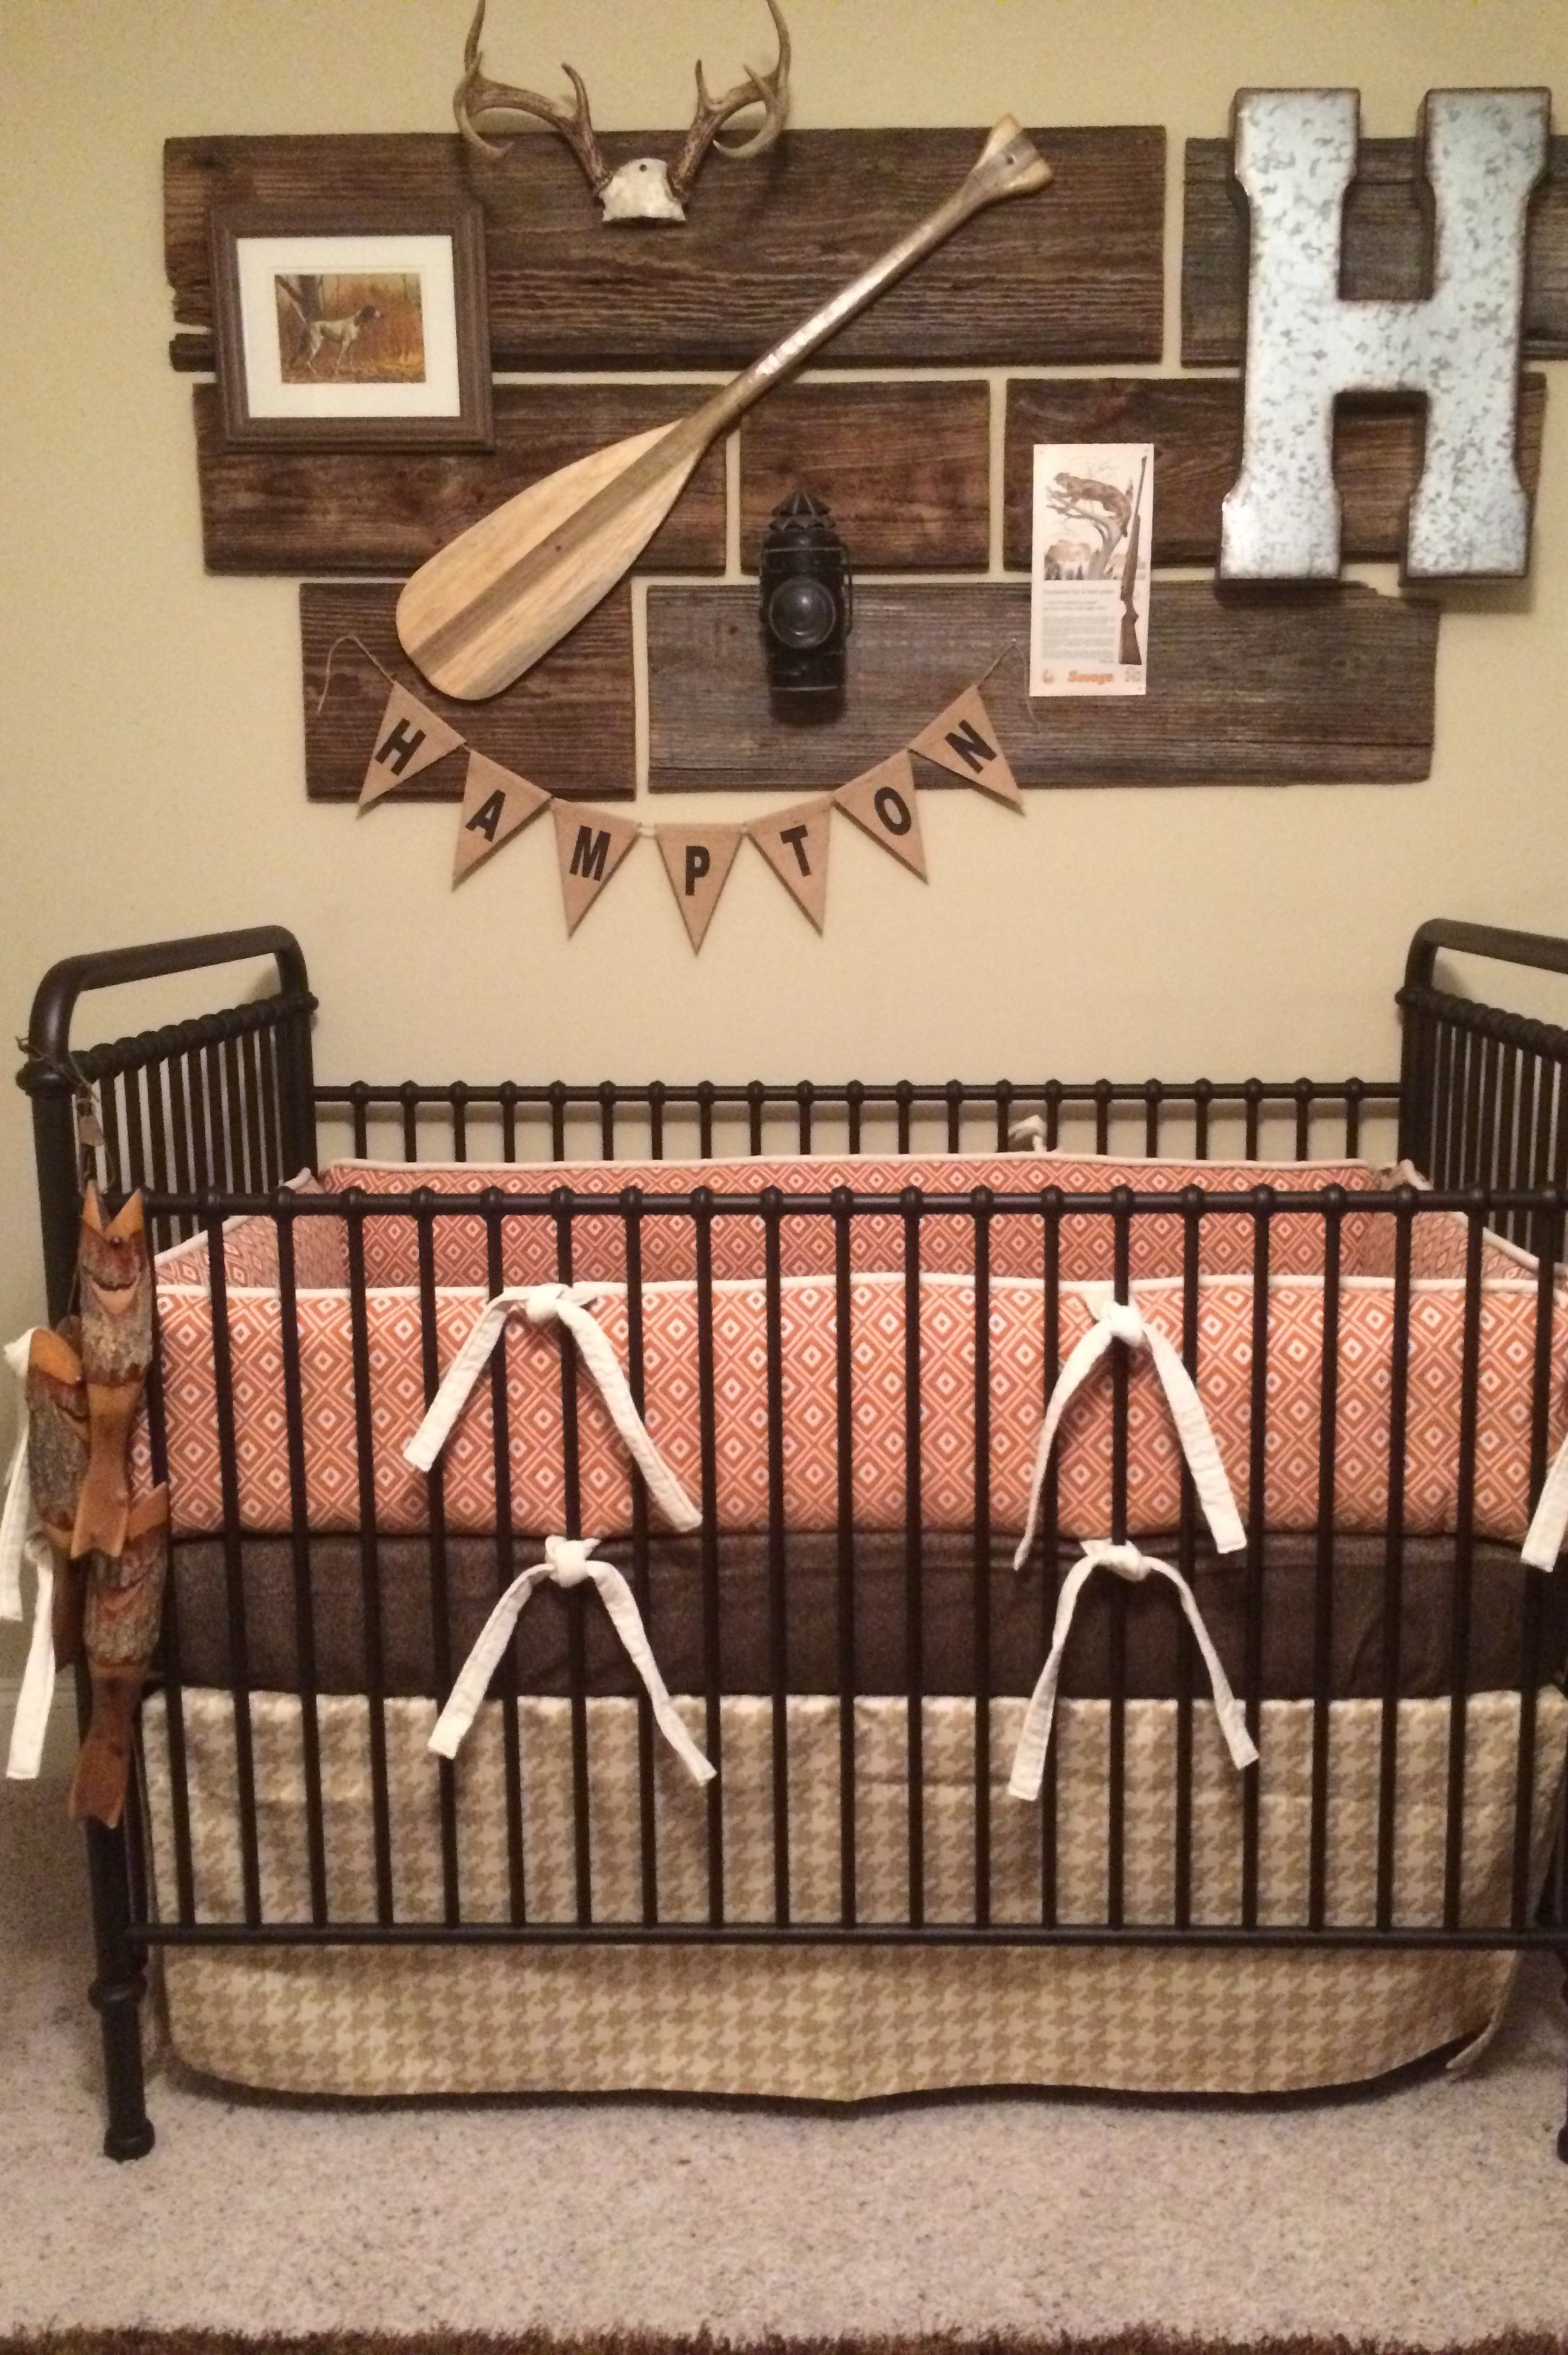 Orange Diamond Crib Bedding In A Rustic Nursery Orange